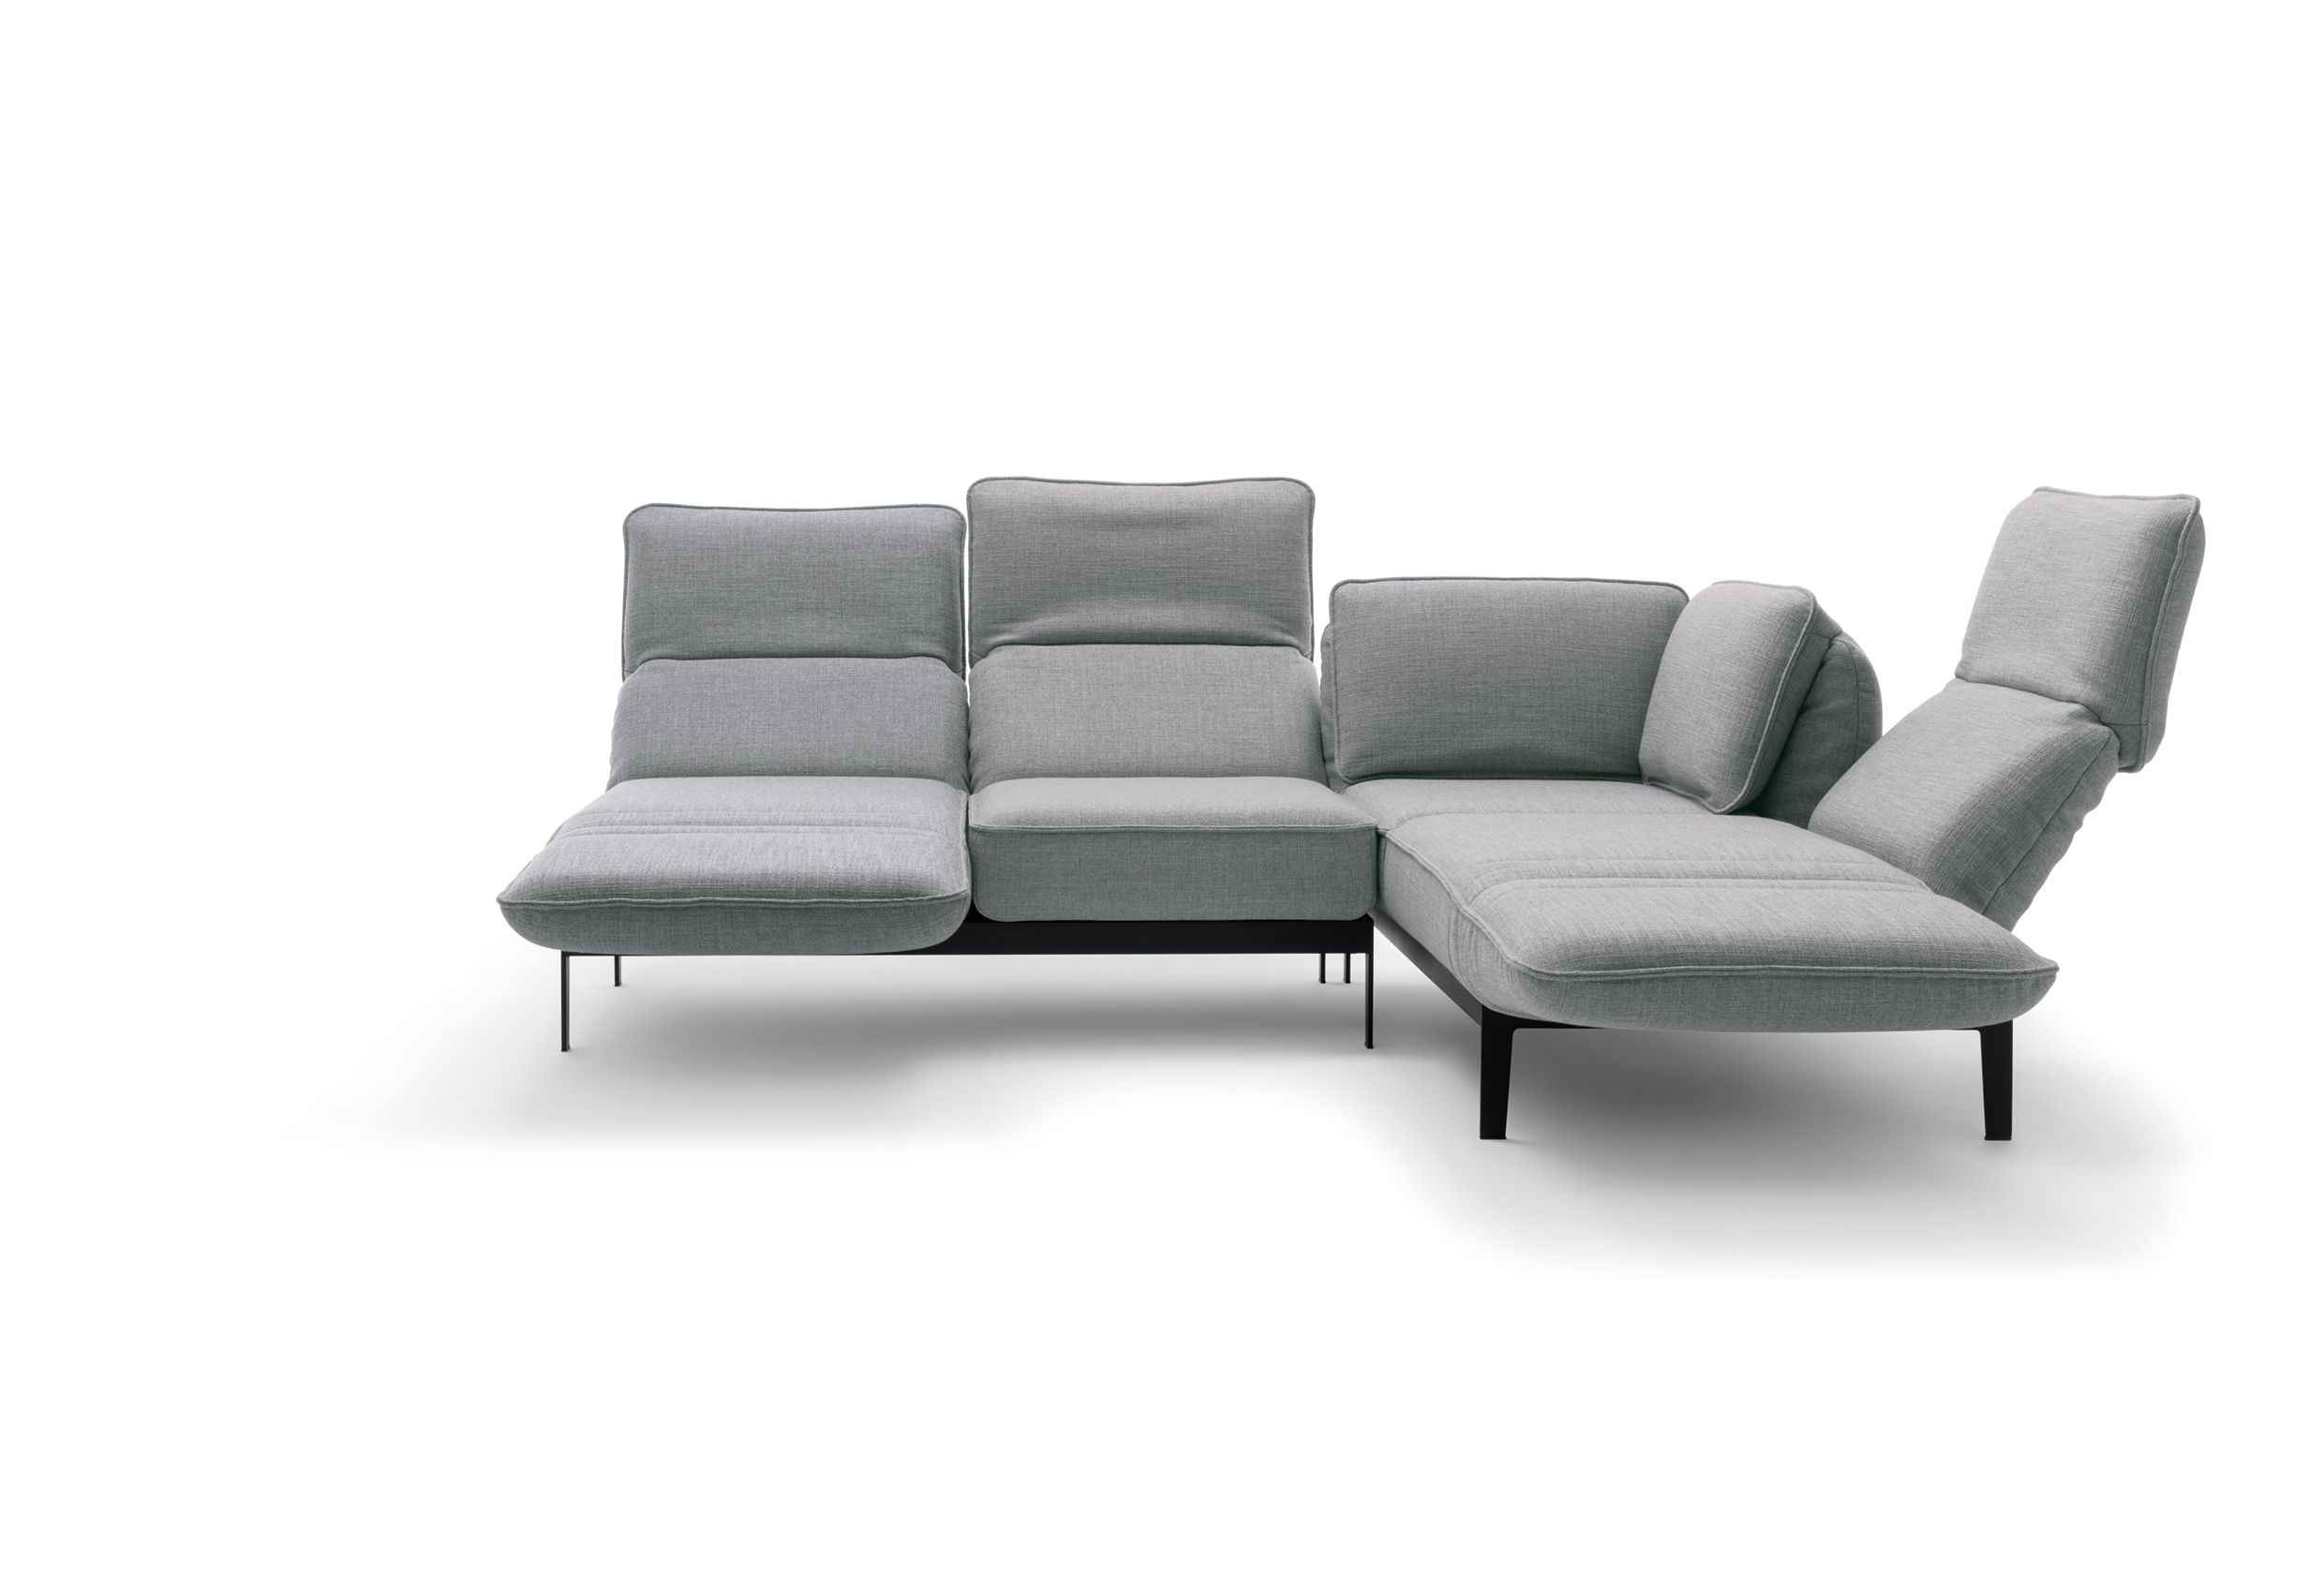 Rolf Benz Eckcouch Rolf Benz Mera Sofa Bed Available Comfort Options For Sitting